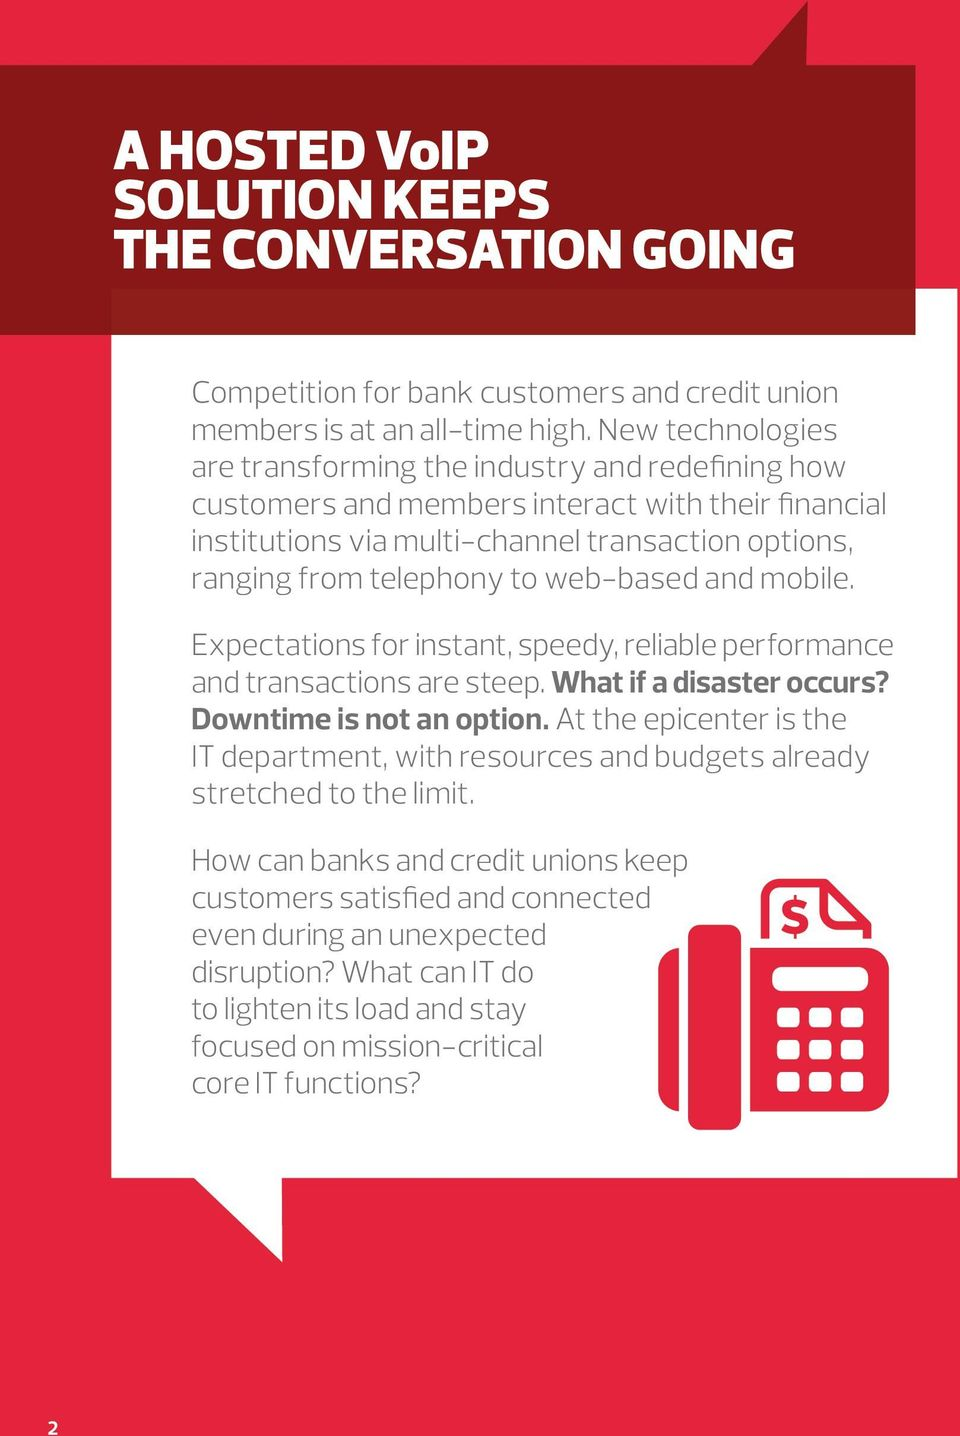 web-based and mobile. Expectations for instant, speedy, reliable performance and transactions are steep. What if a disaster occurs? Downtime is not an option.